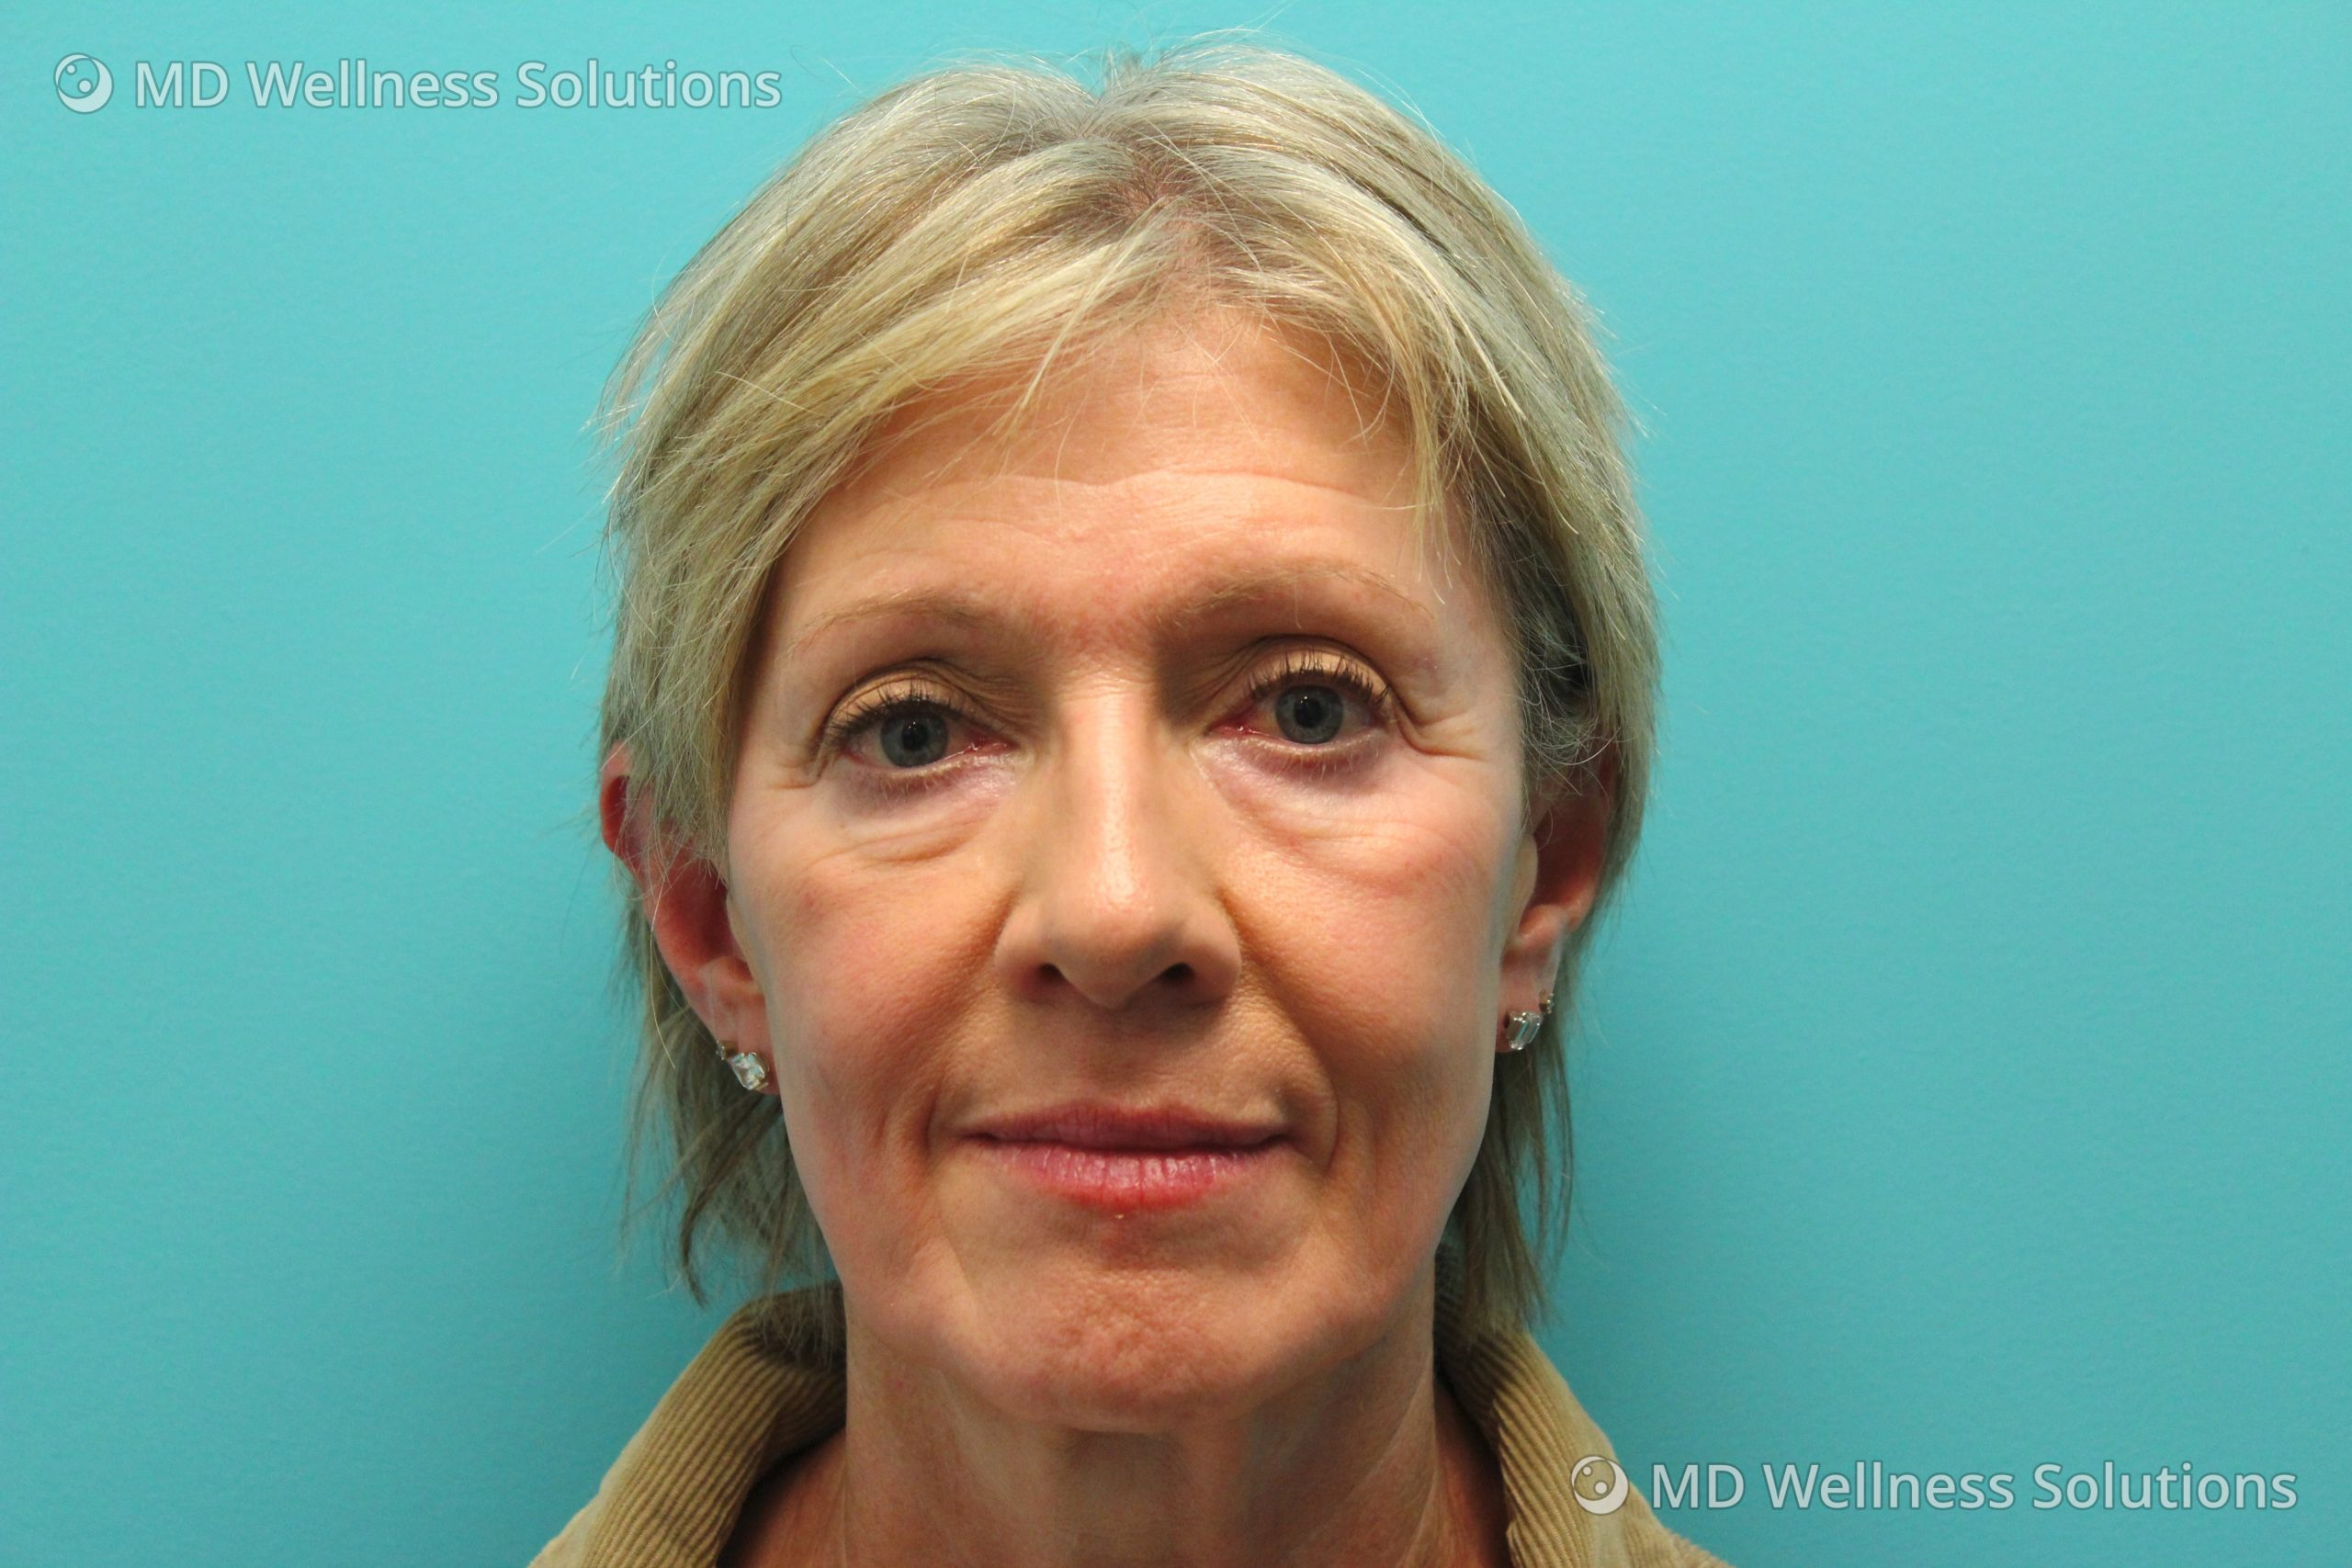 55-64 year old woman before dermal filler treatment